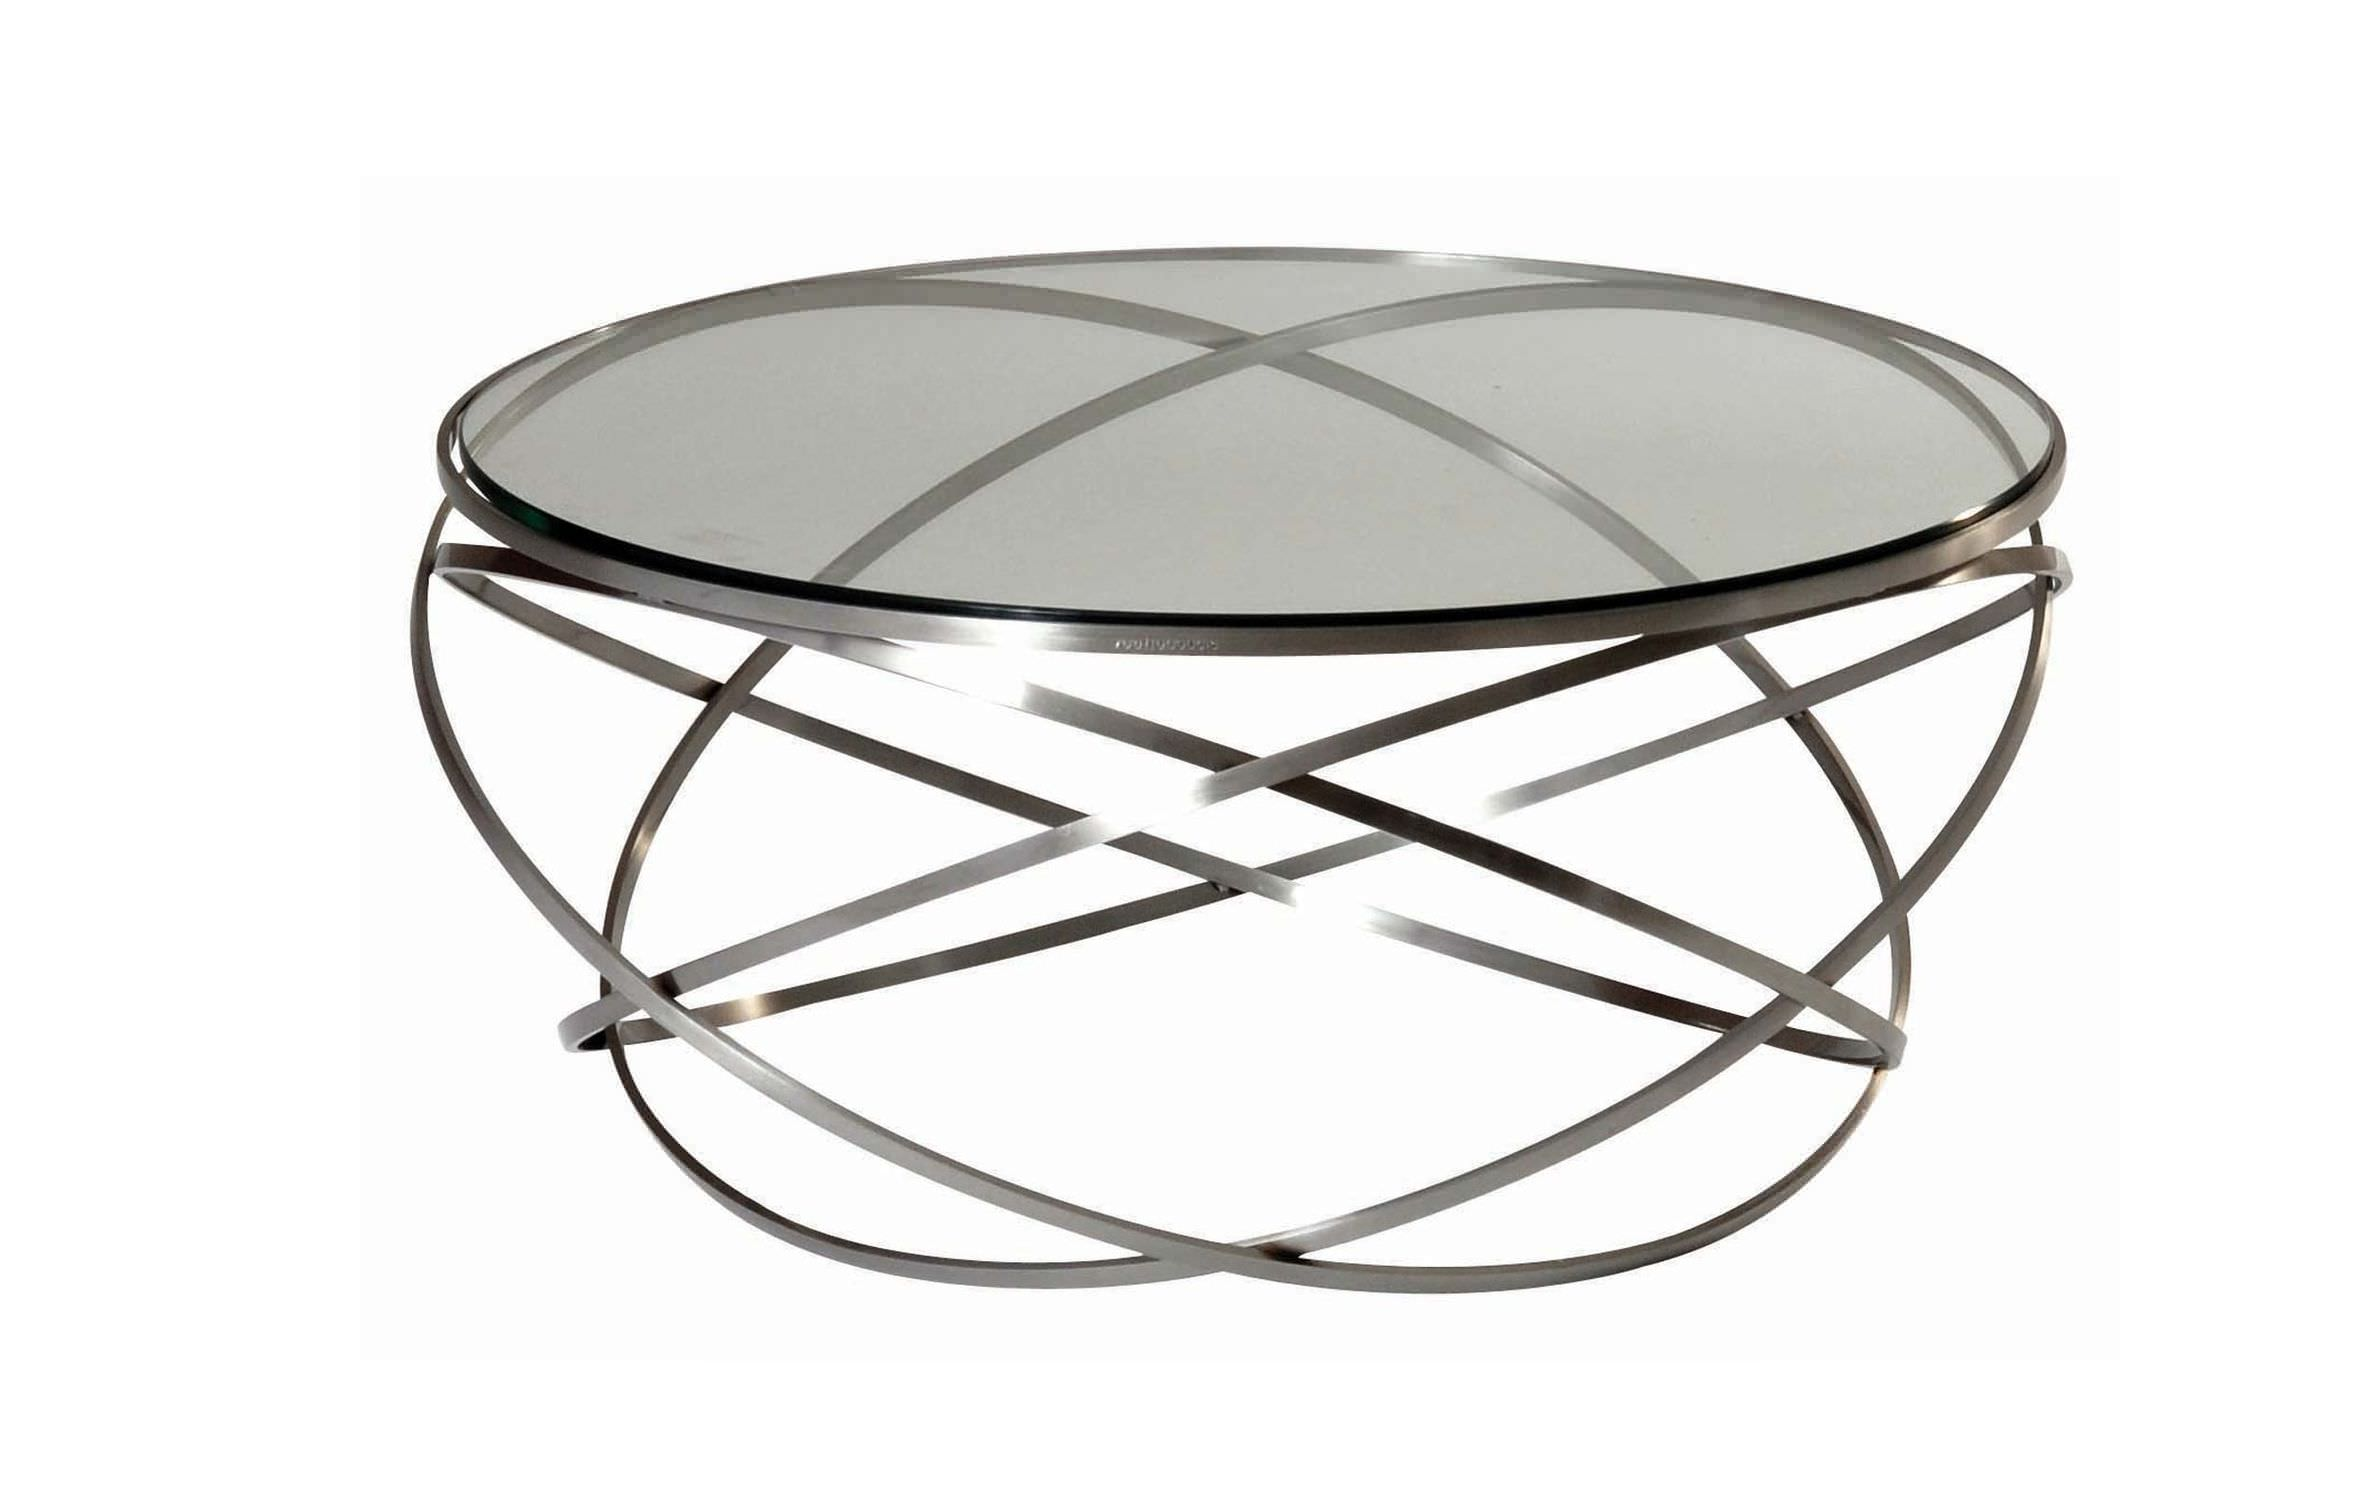 Round Metal And Glass Coffee Table Living Room Furniture Futuristic Frosted Glass Coffee Table With Unique Stainless Steel Frame Round Coffee Table With Metal Legs (View 5 of 10)